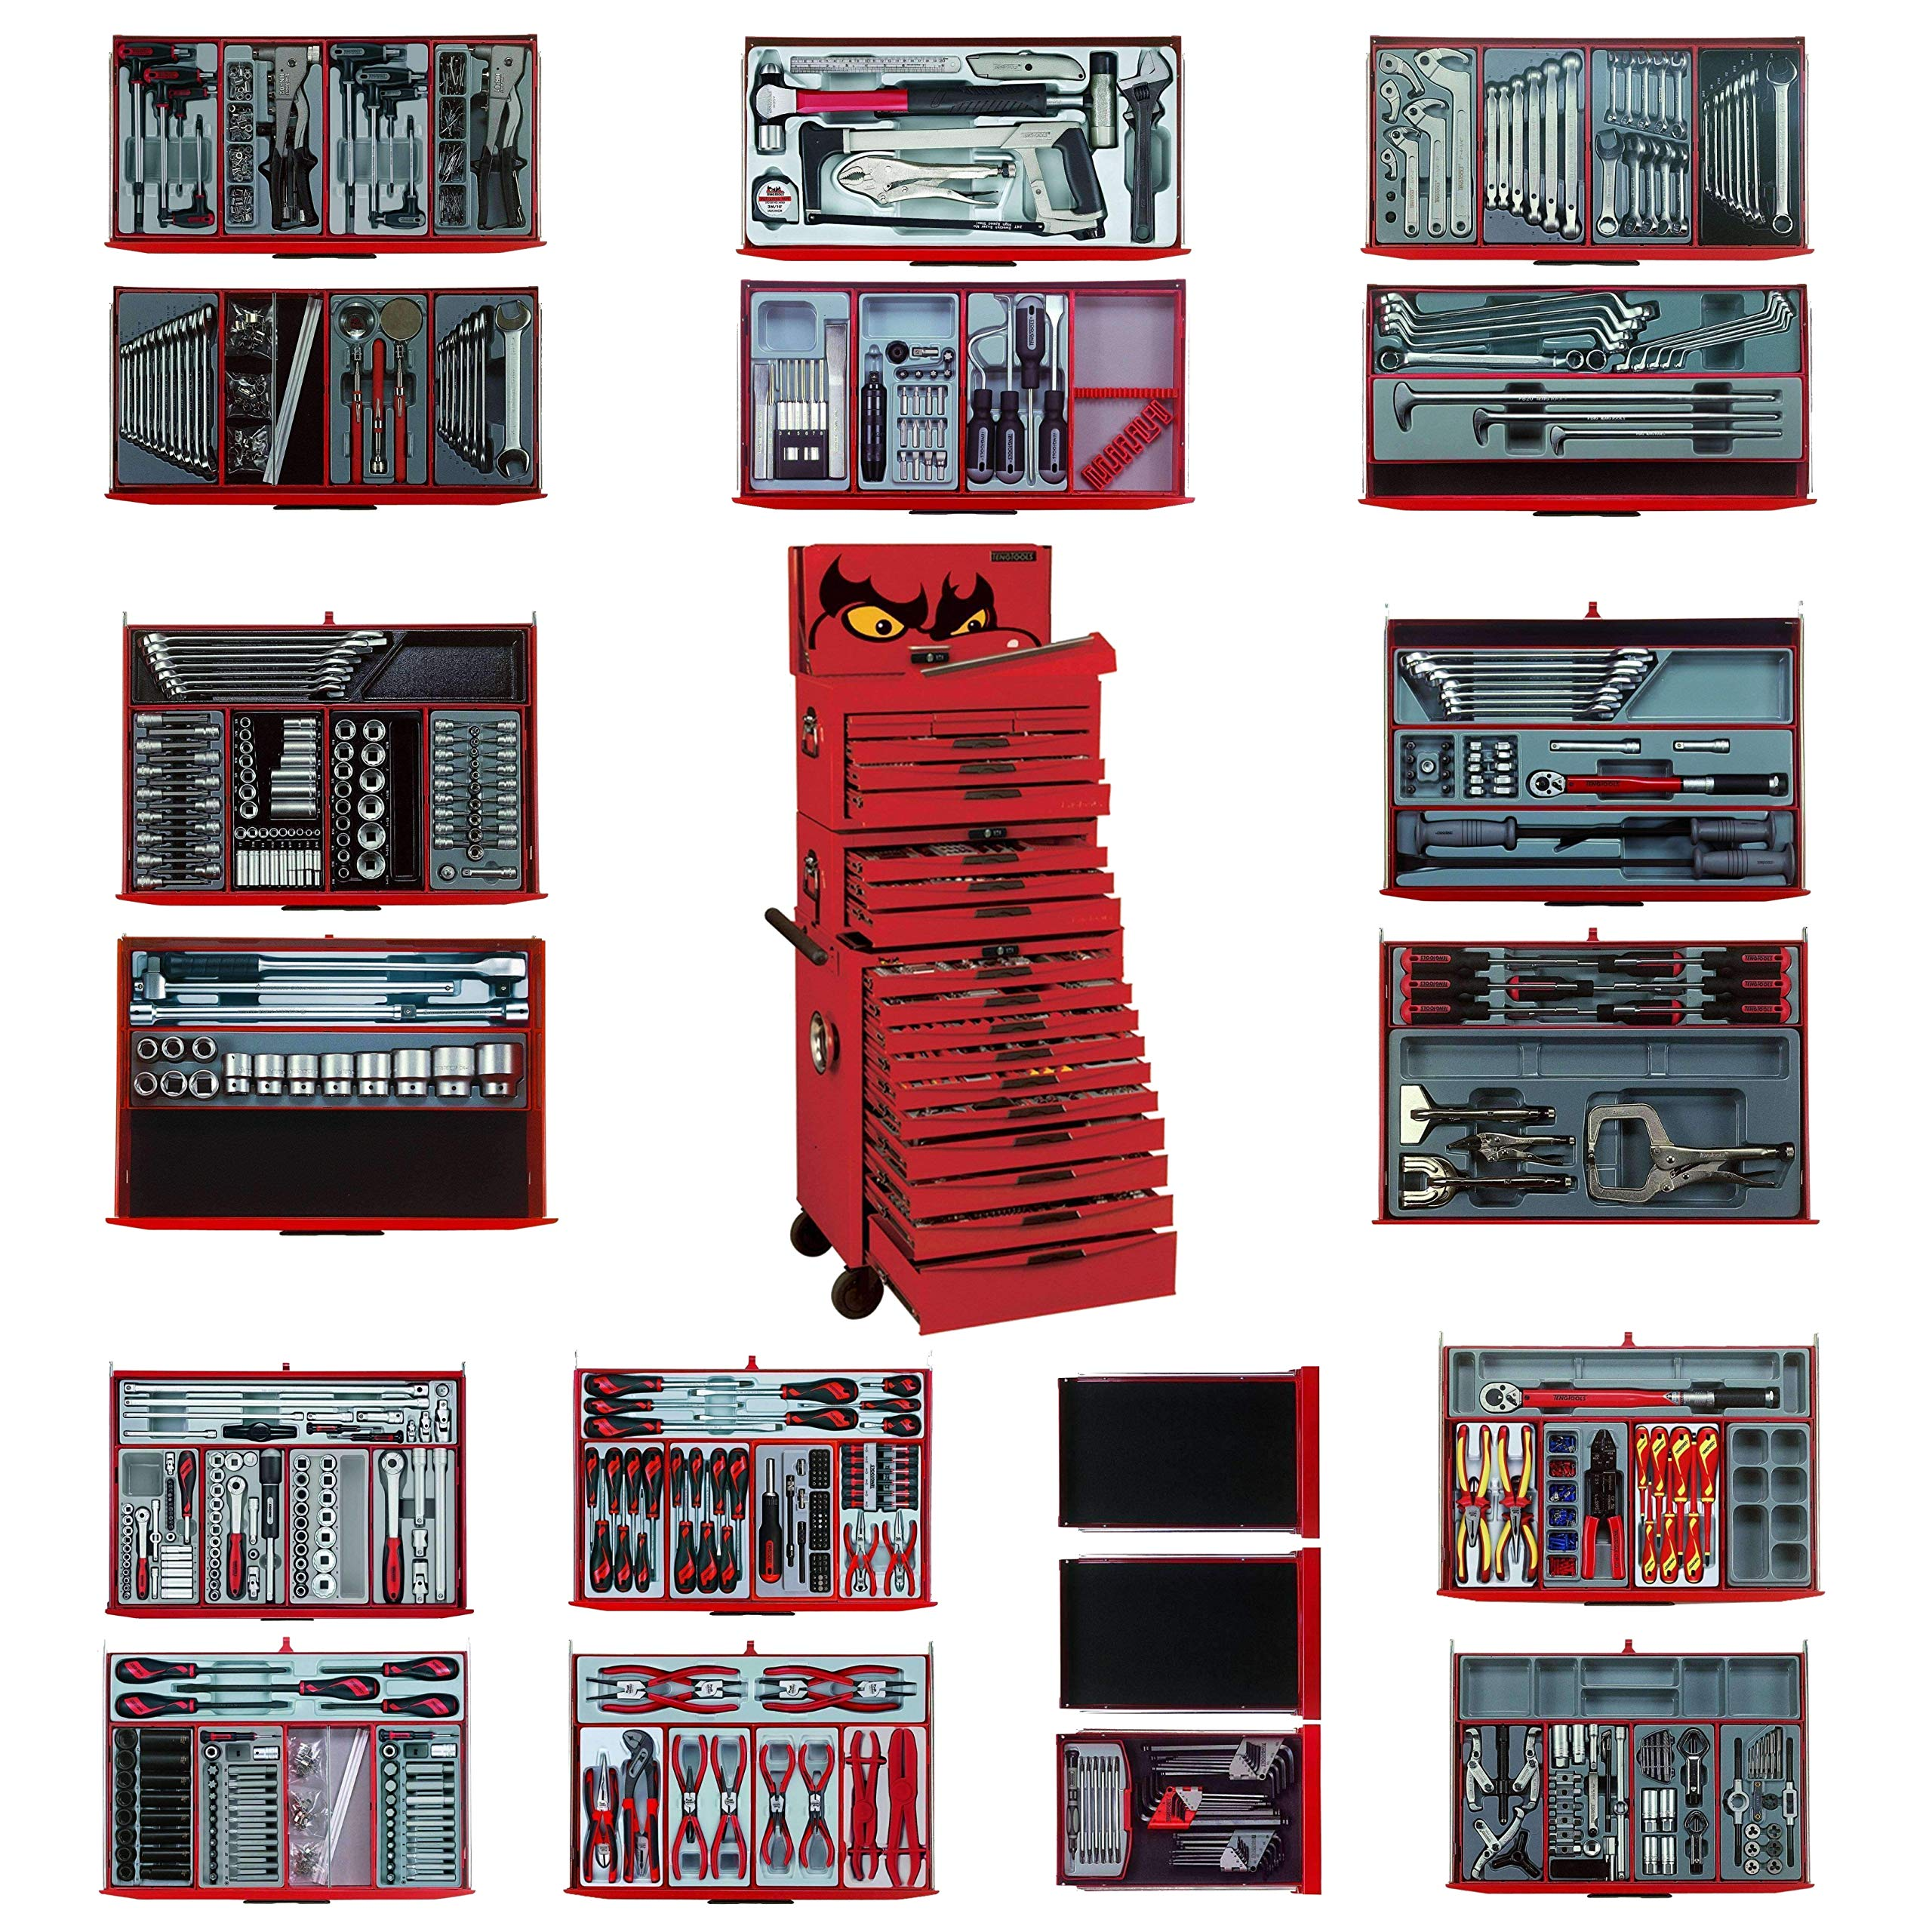 Teng Tools 1001 Piece Complete Mega Master Mixed Hand Tool Kit With 3 Heavy Duty Toolbox Storage Cases - TCMM1001N